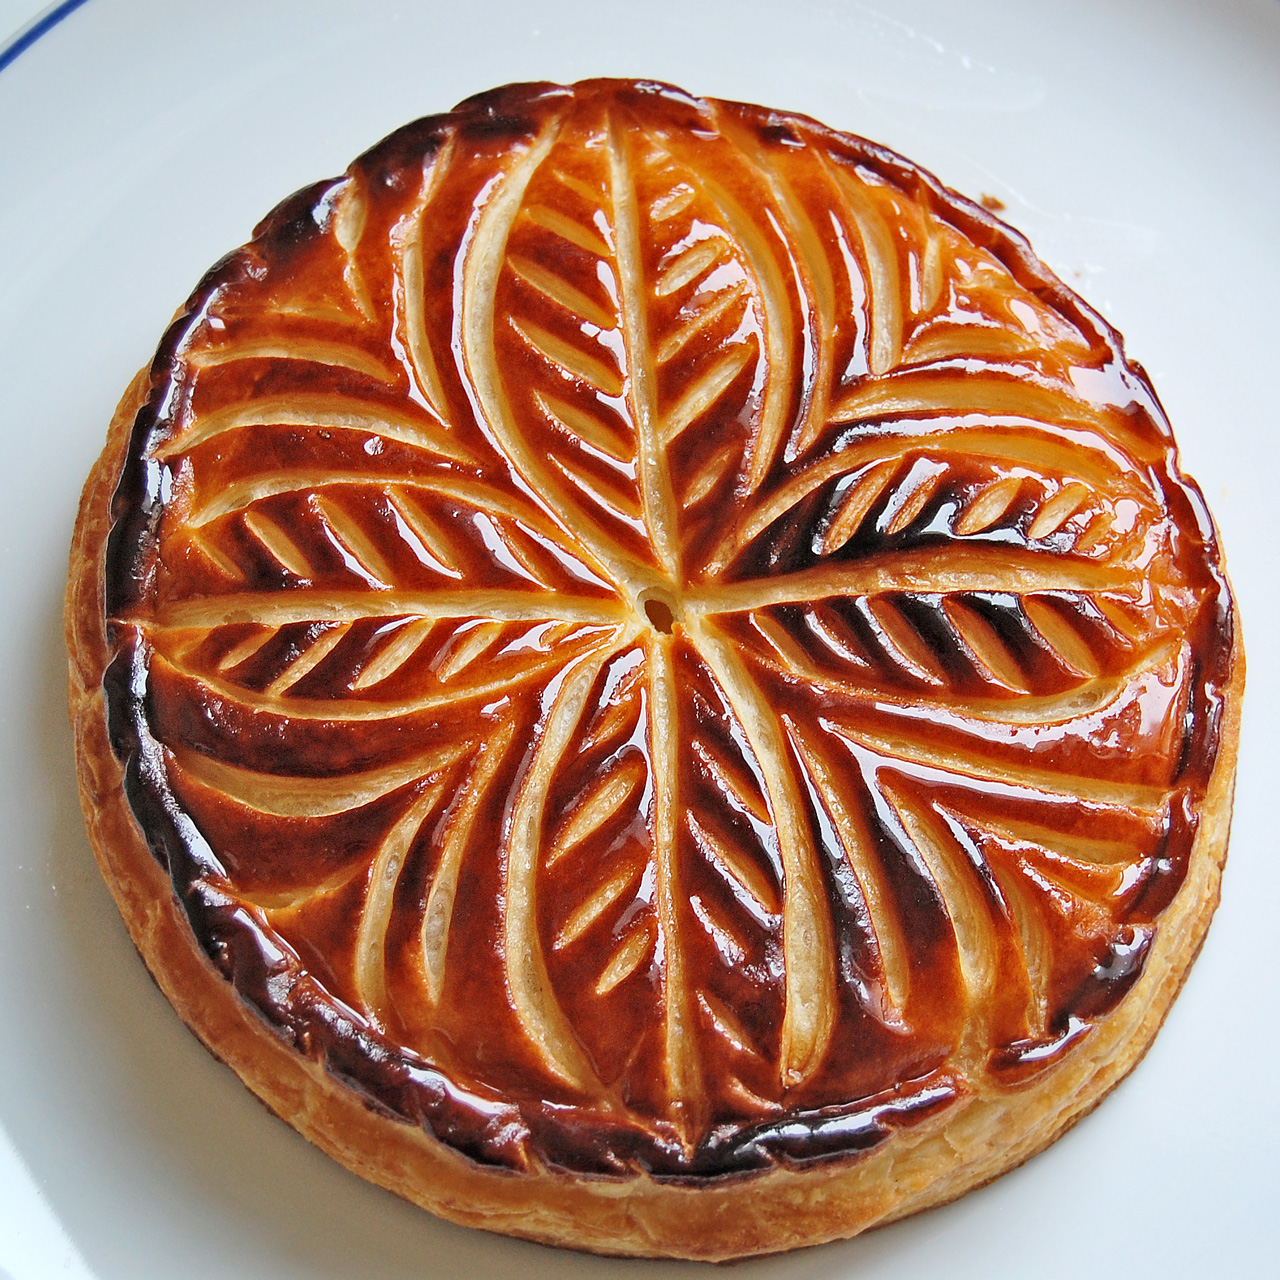 PITHIVIERS | Cook , eat & move fast !